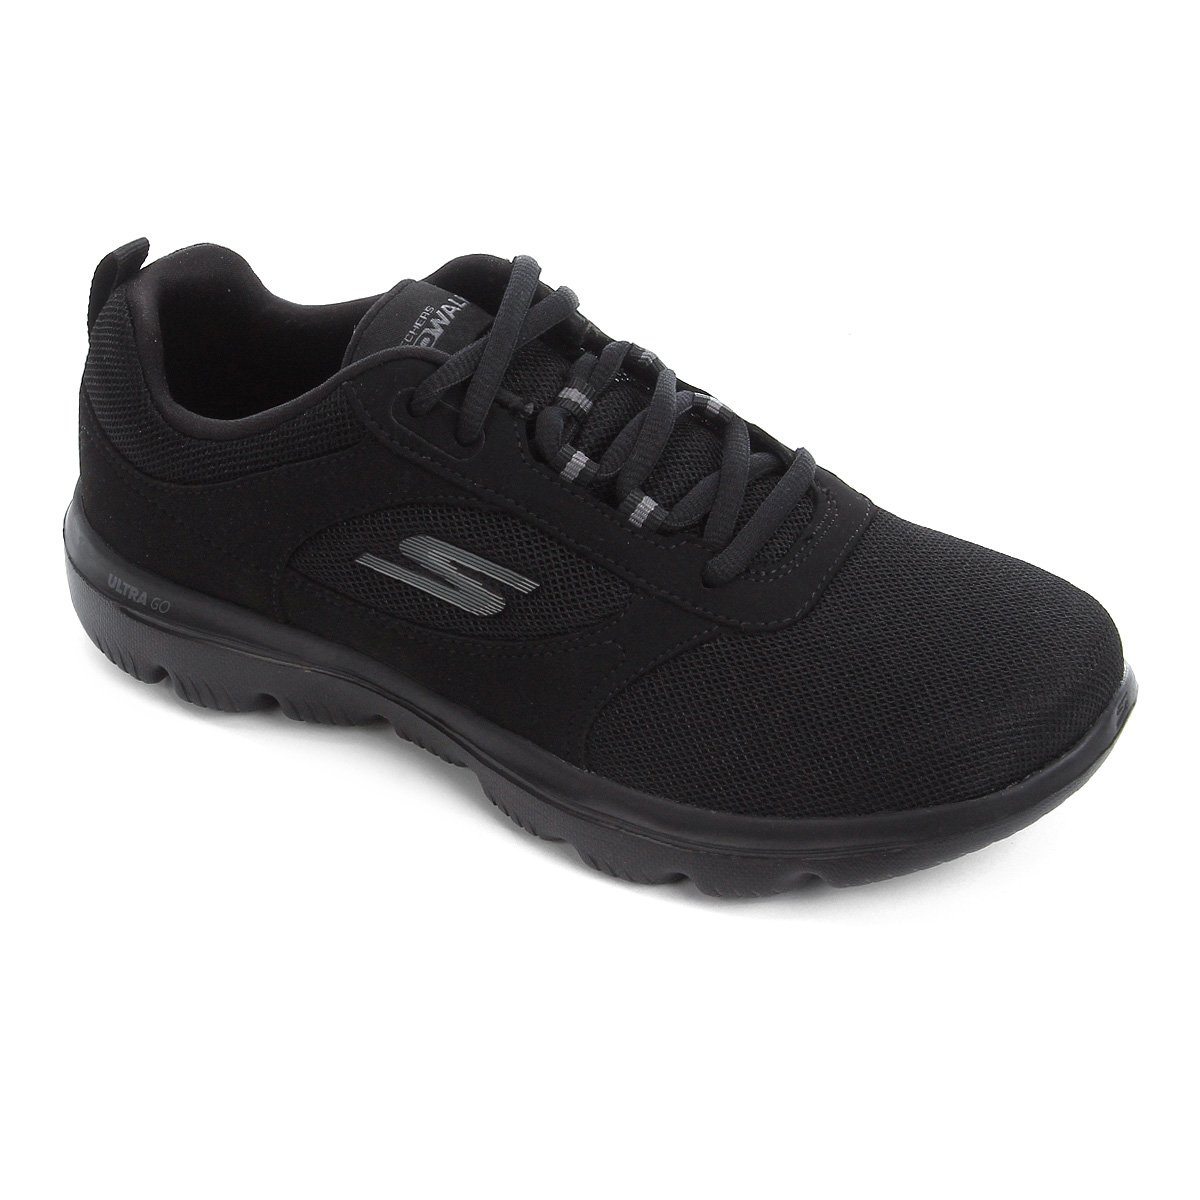 f927bcdc3 Tênis Skechers Go Walk Evolution Ultra Feminino